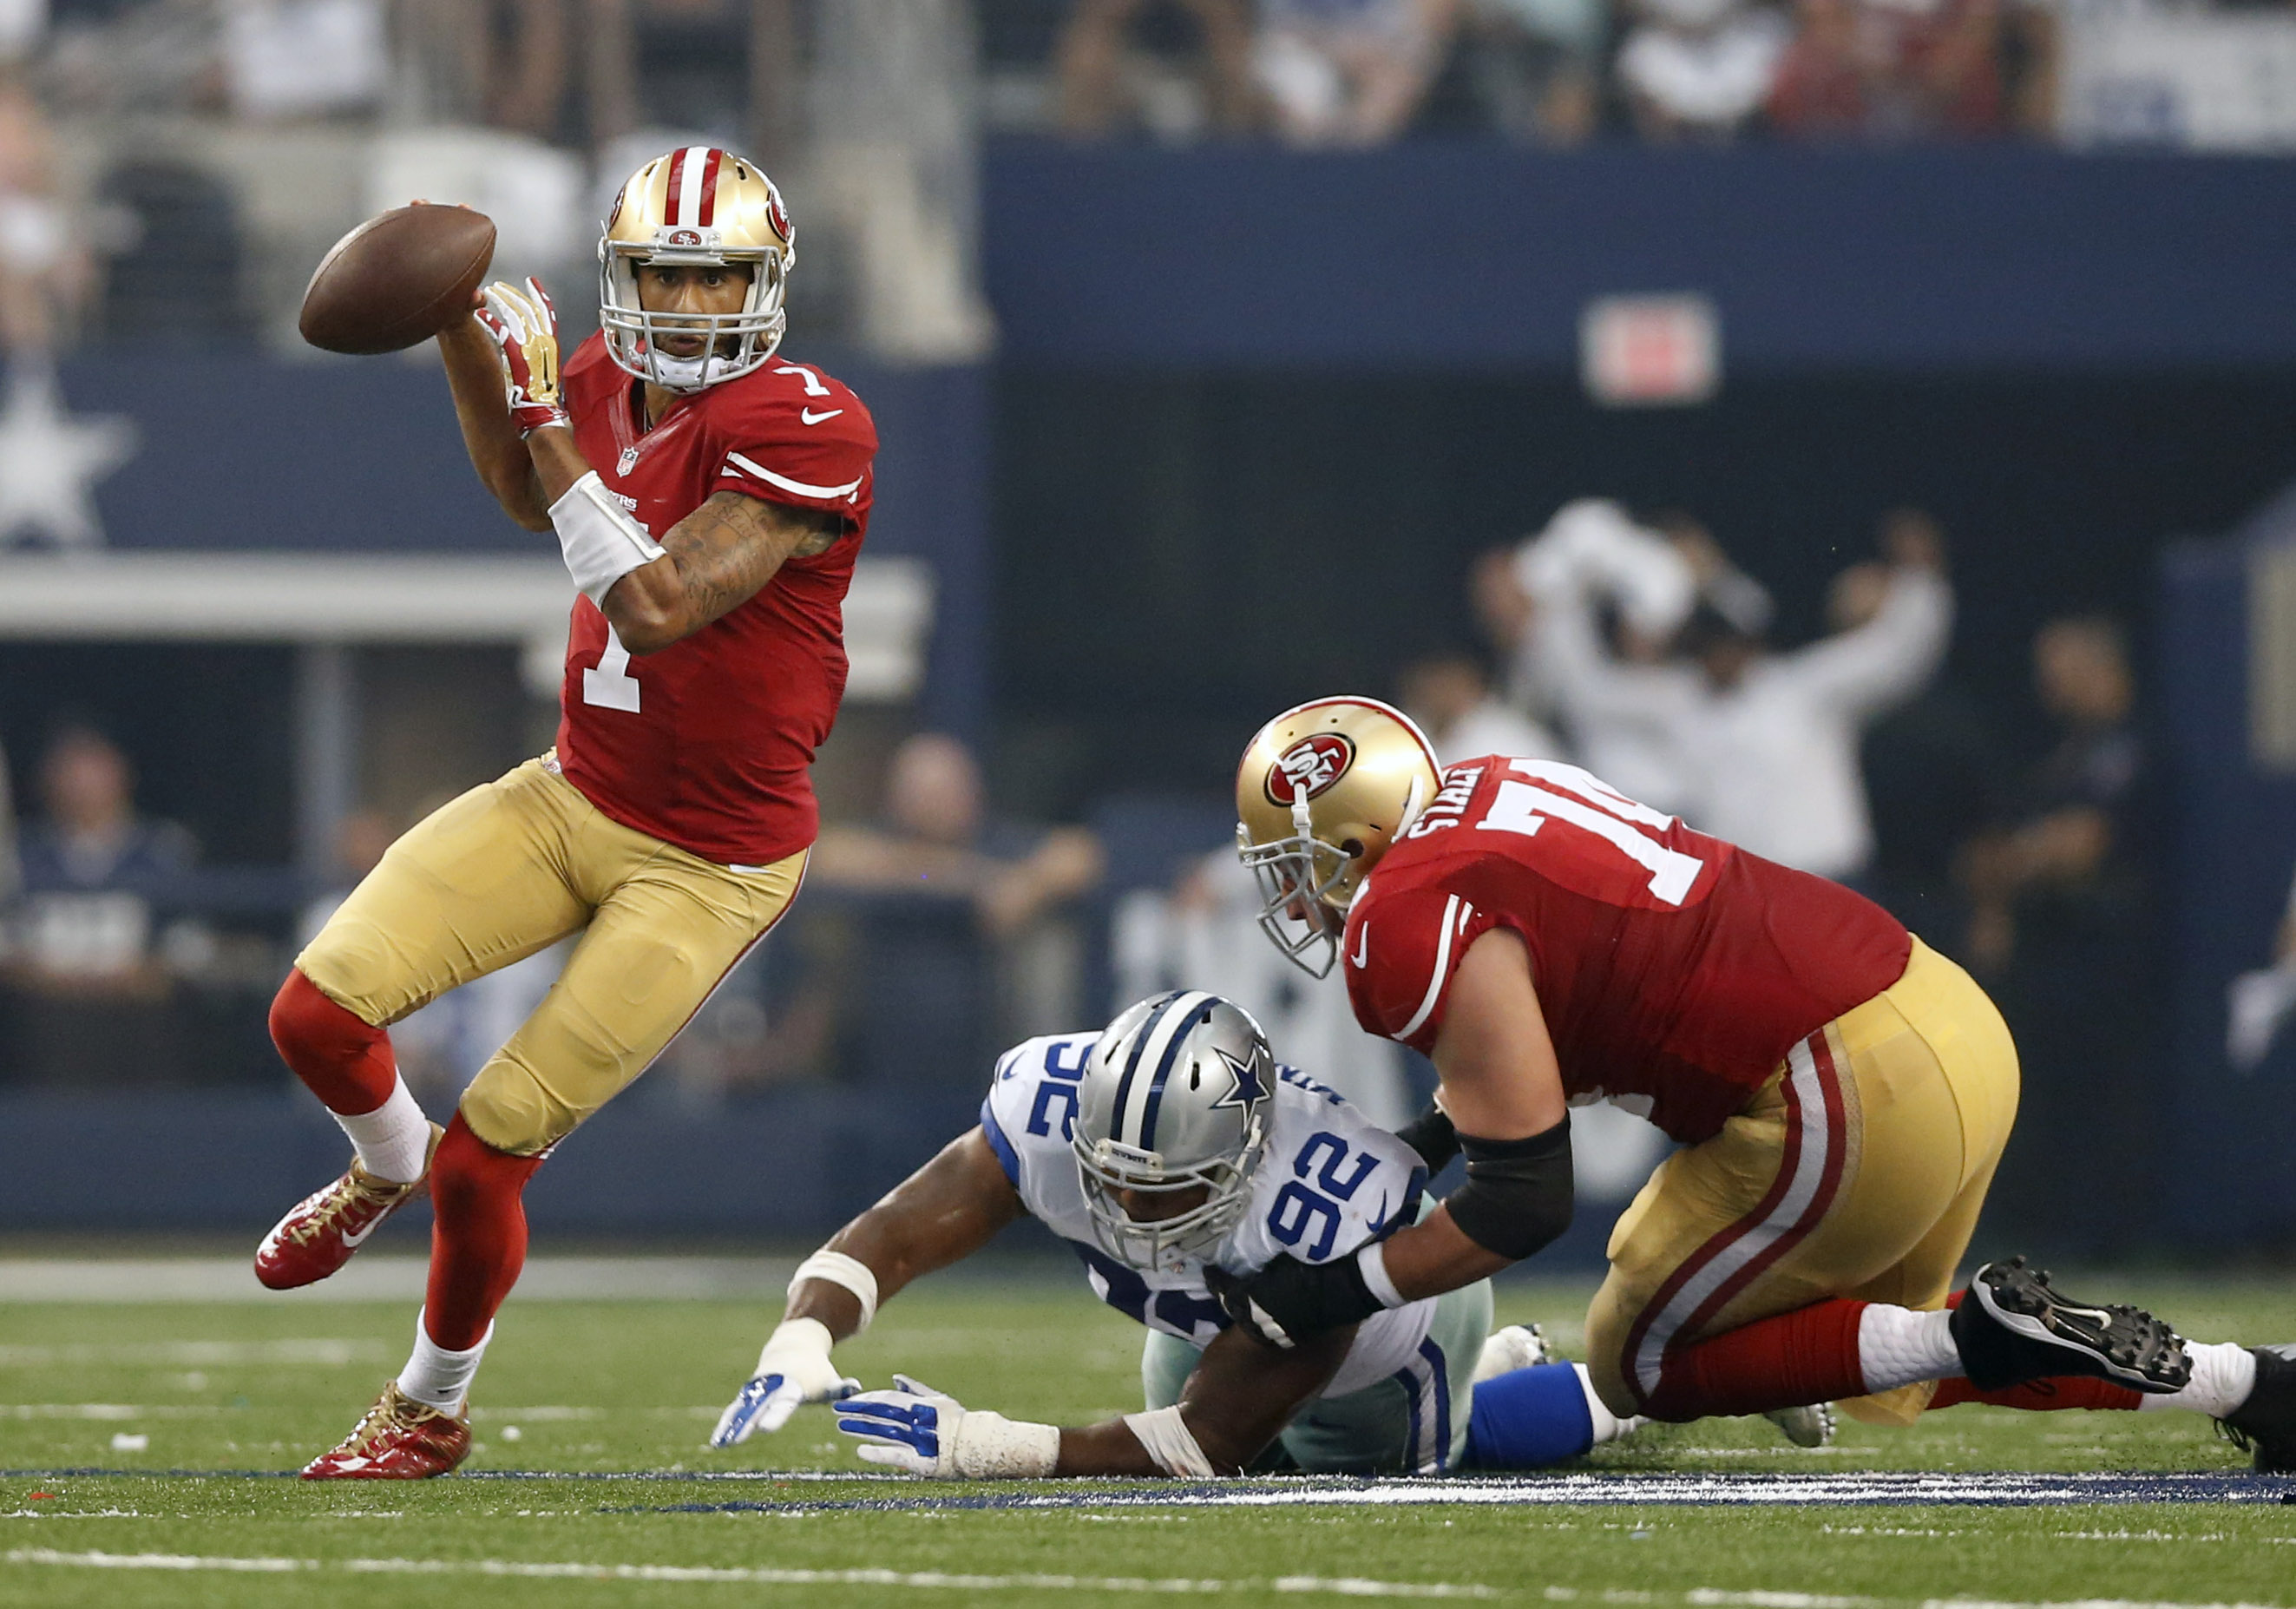 Is Reggie Davis providing some new ideas from the 49ers for Mike Riley's offense to evolve?